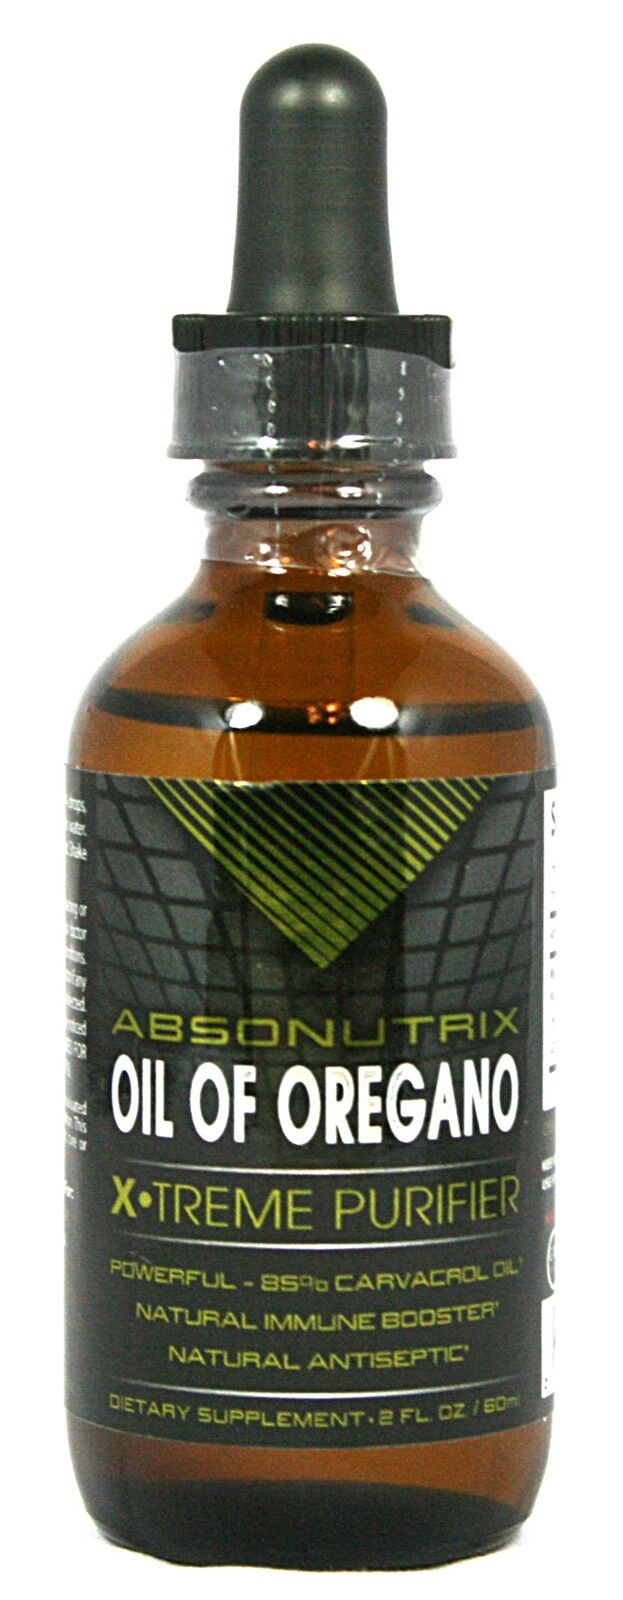 2oz Oil of Oregano 43mg Liquid Extract 85% Carvacrol Immune Support Absonutrix